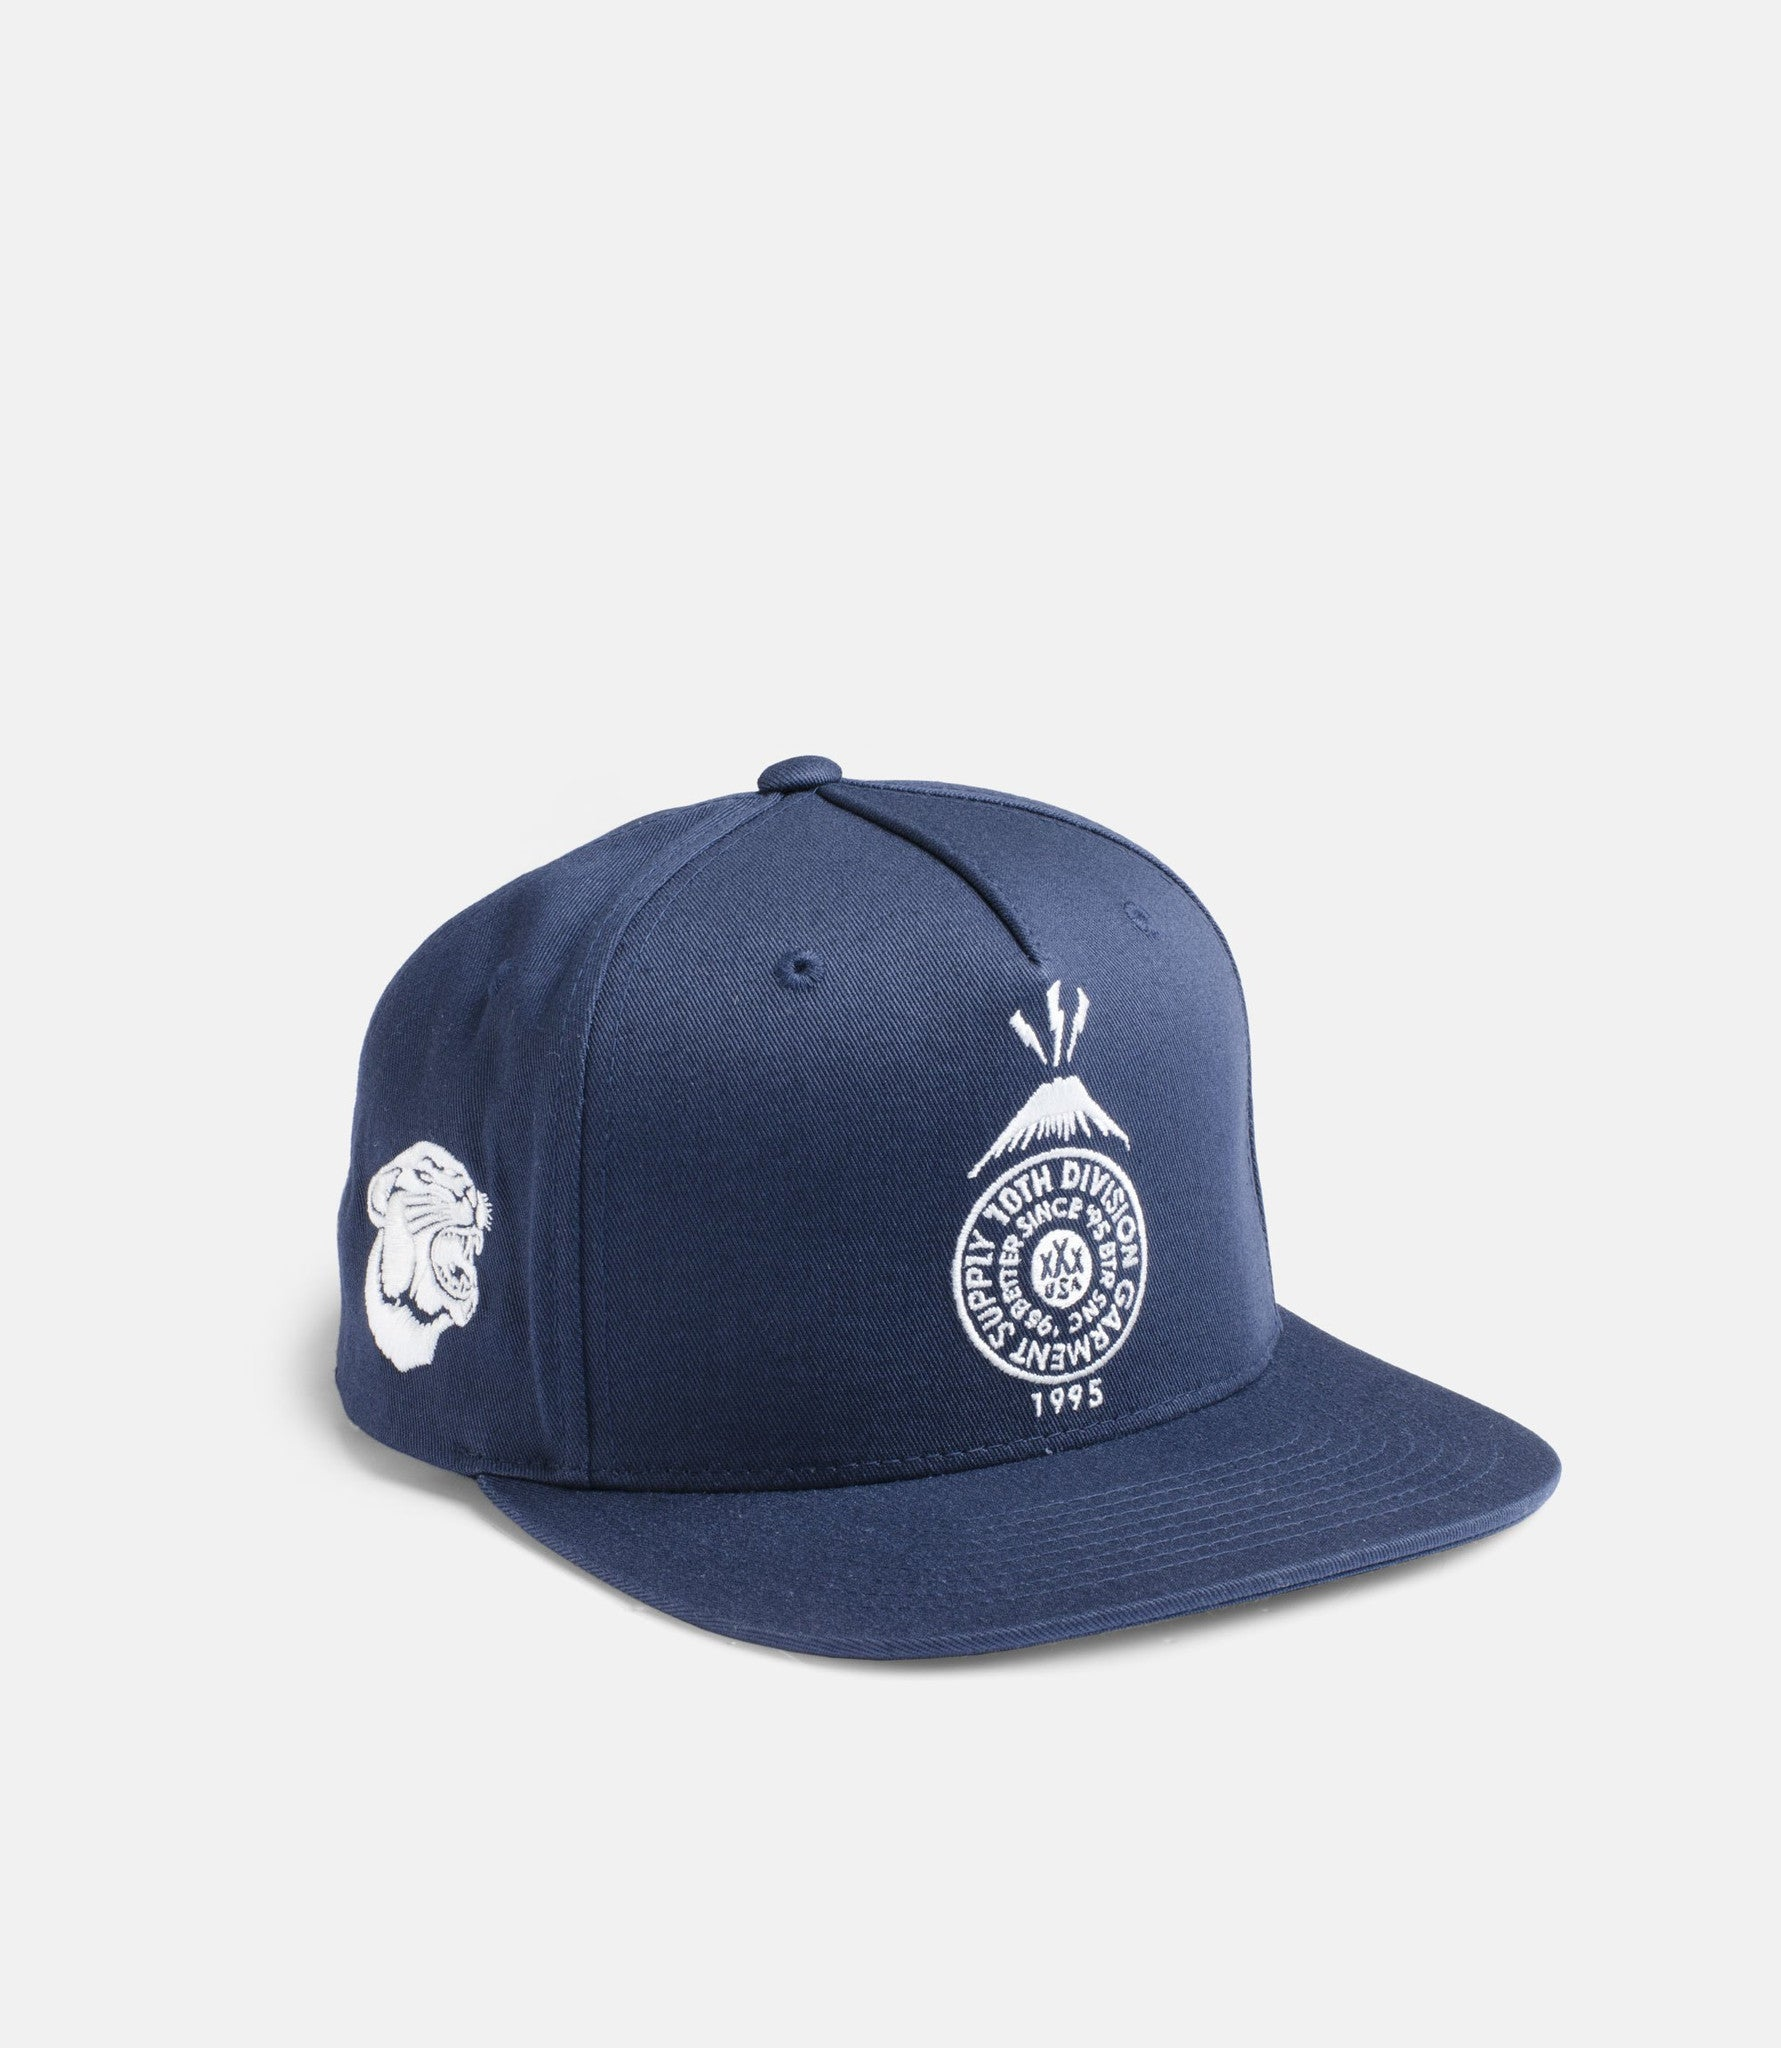 10Deep - Souvenir Snapback, Navy - The Giant Peach - 2